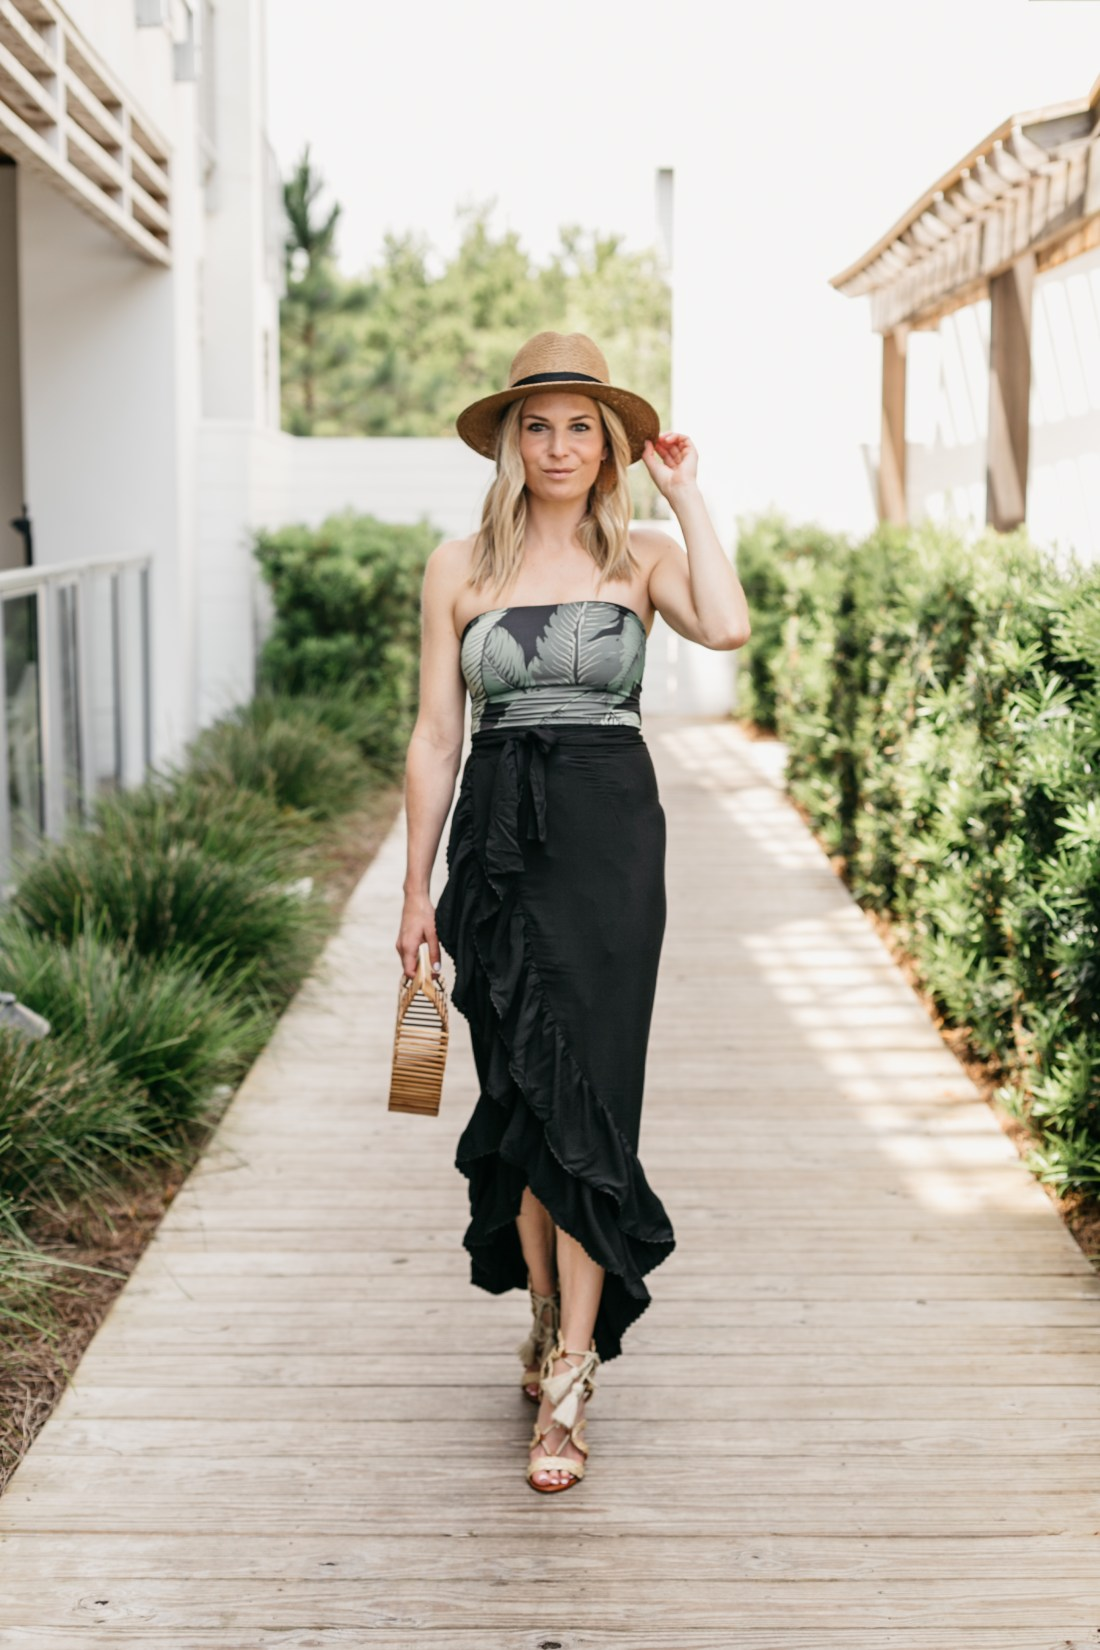 Broke Outfit Details: Palm Print Bodysuit/Swimsuit // Black Ruffle Midi Skirt // Strappy Heel // Straw Hat // Wooden Bag